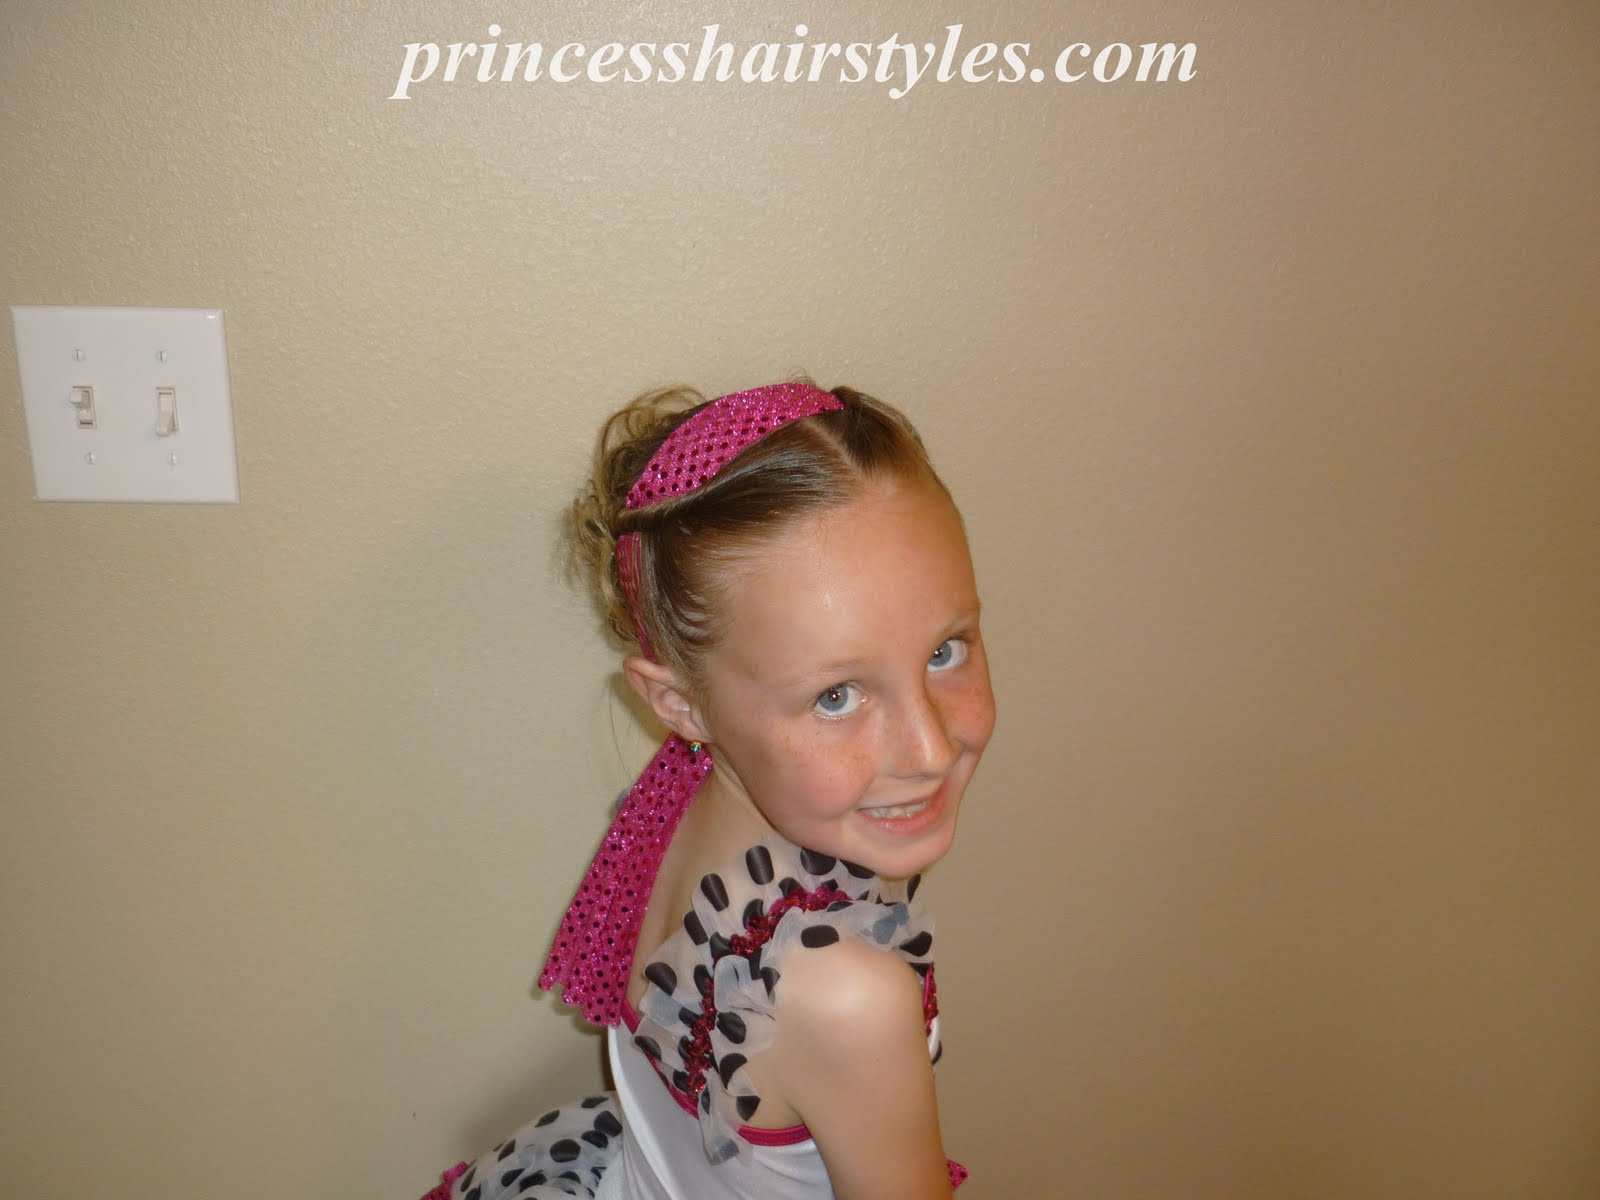 Hair Styles For A Dance